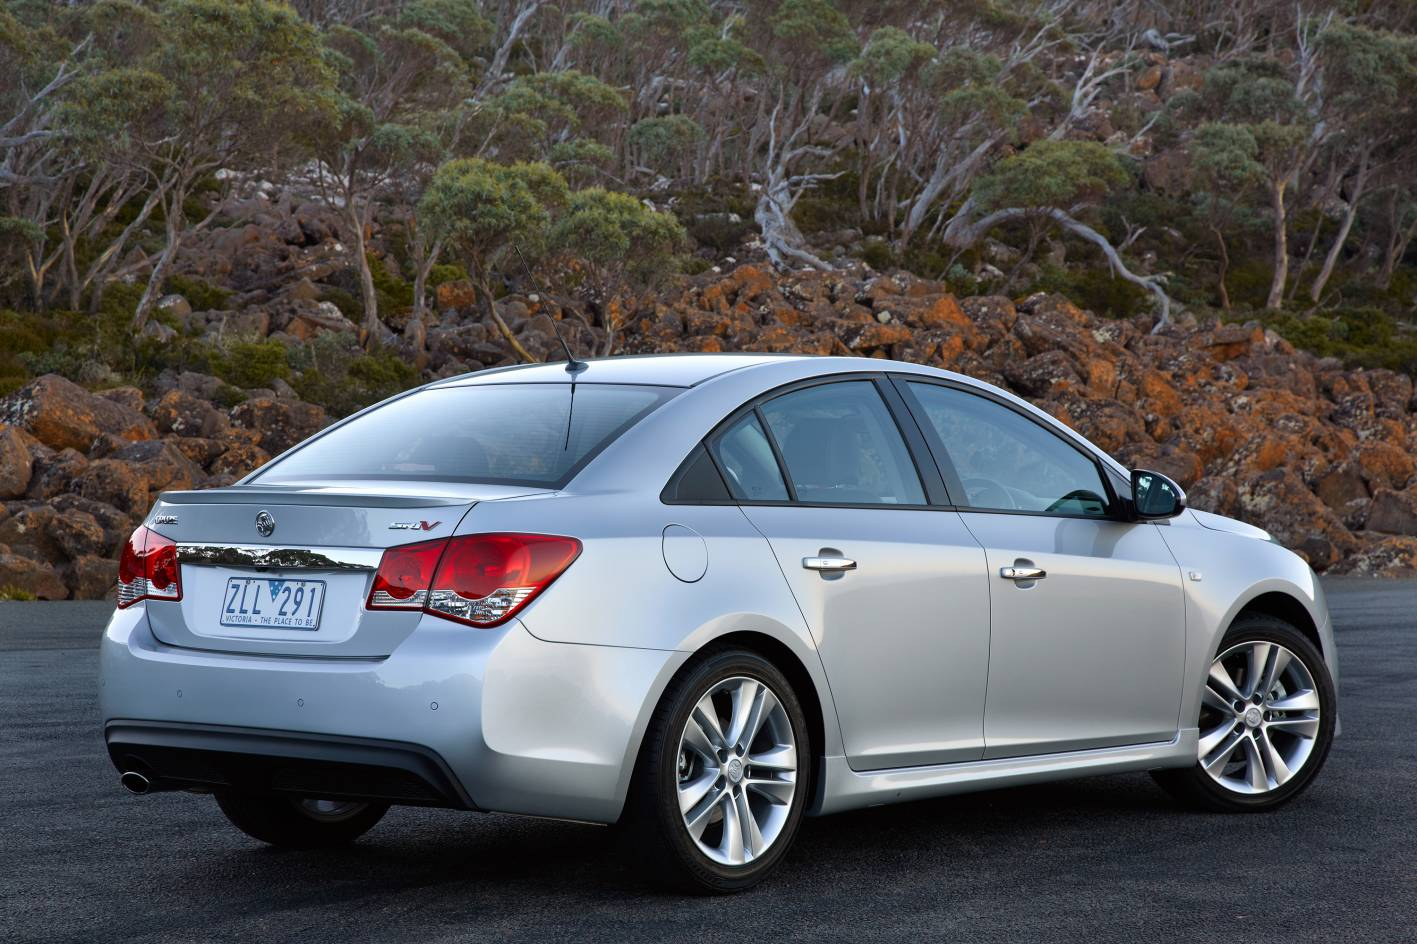 Should I Buy a Holden Cruze? — Auto Expert by John Cadogan